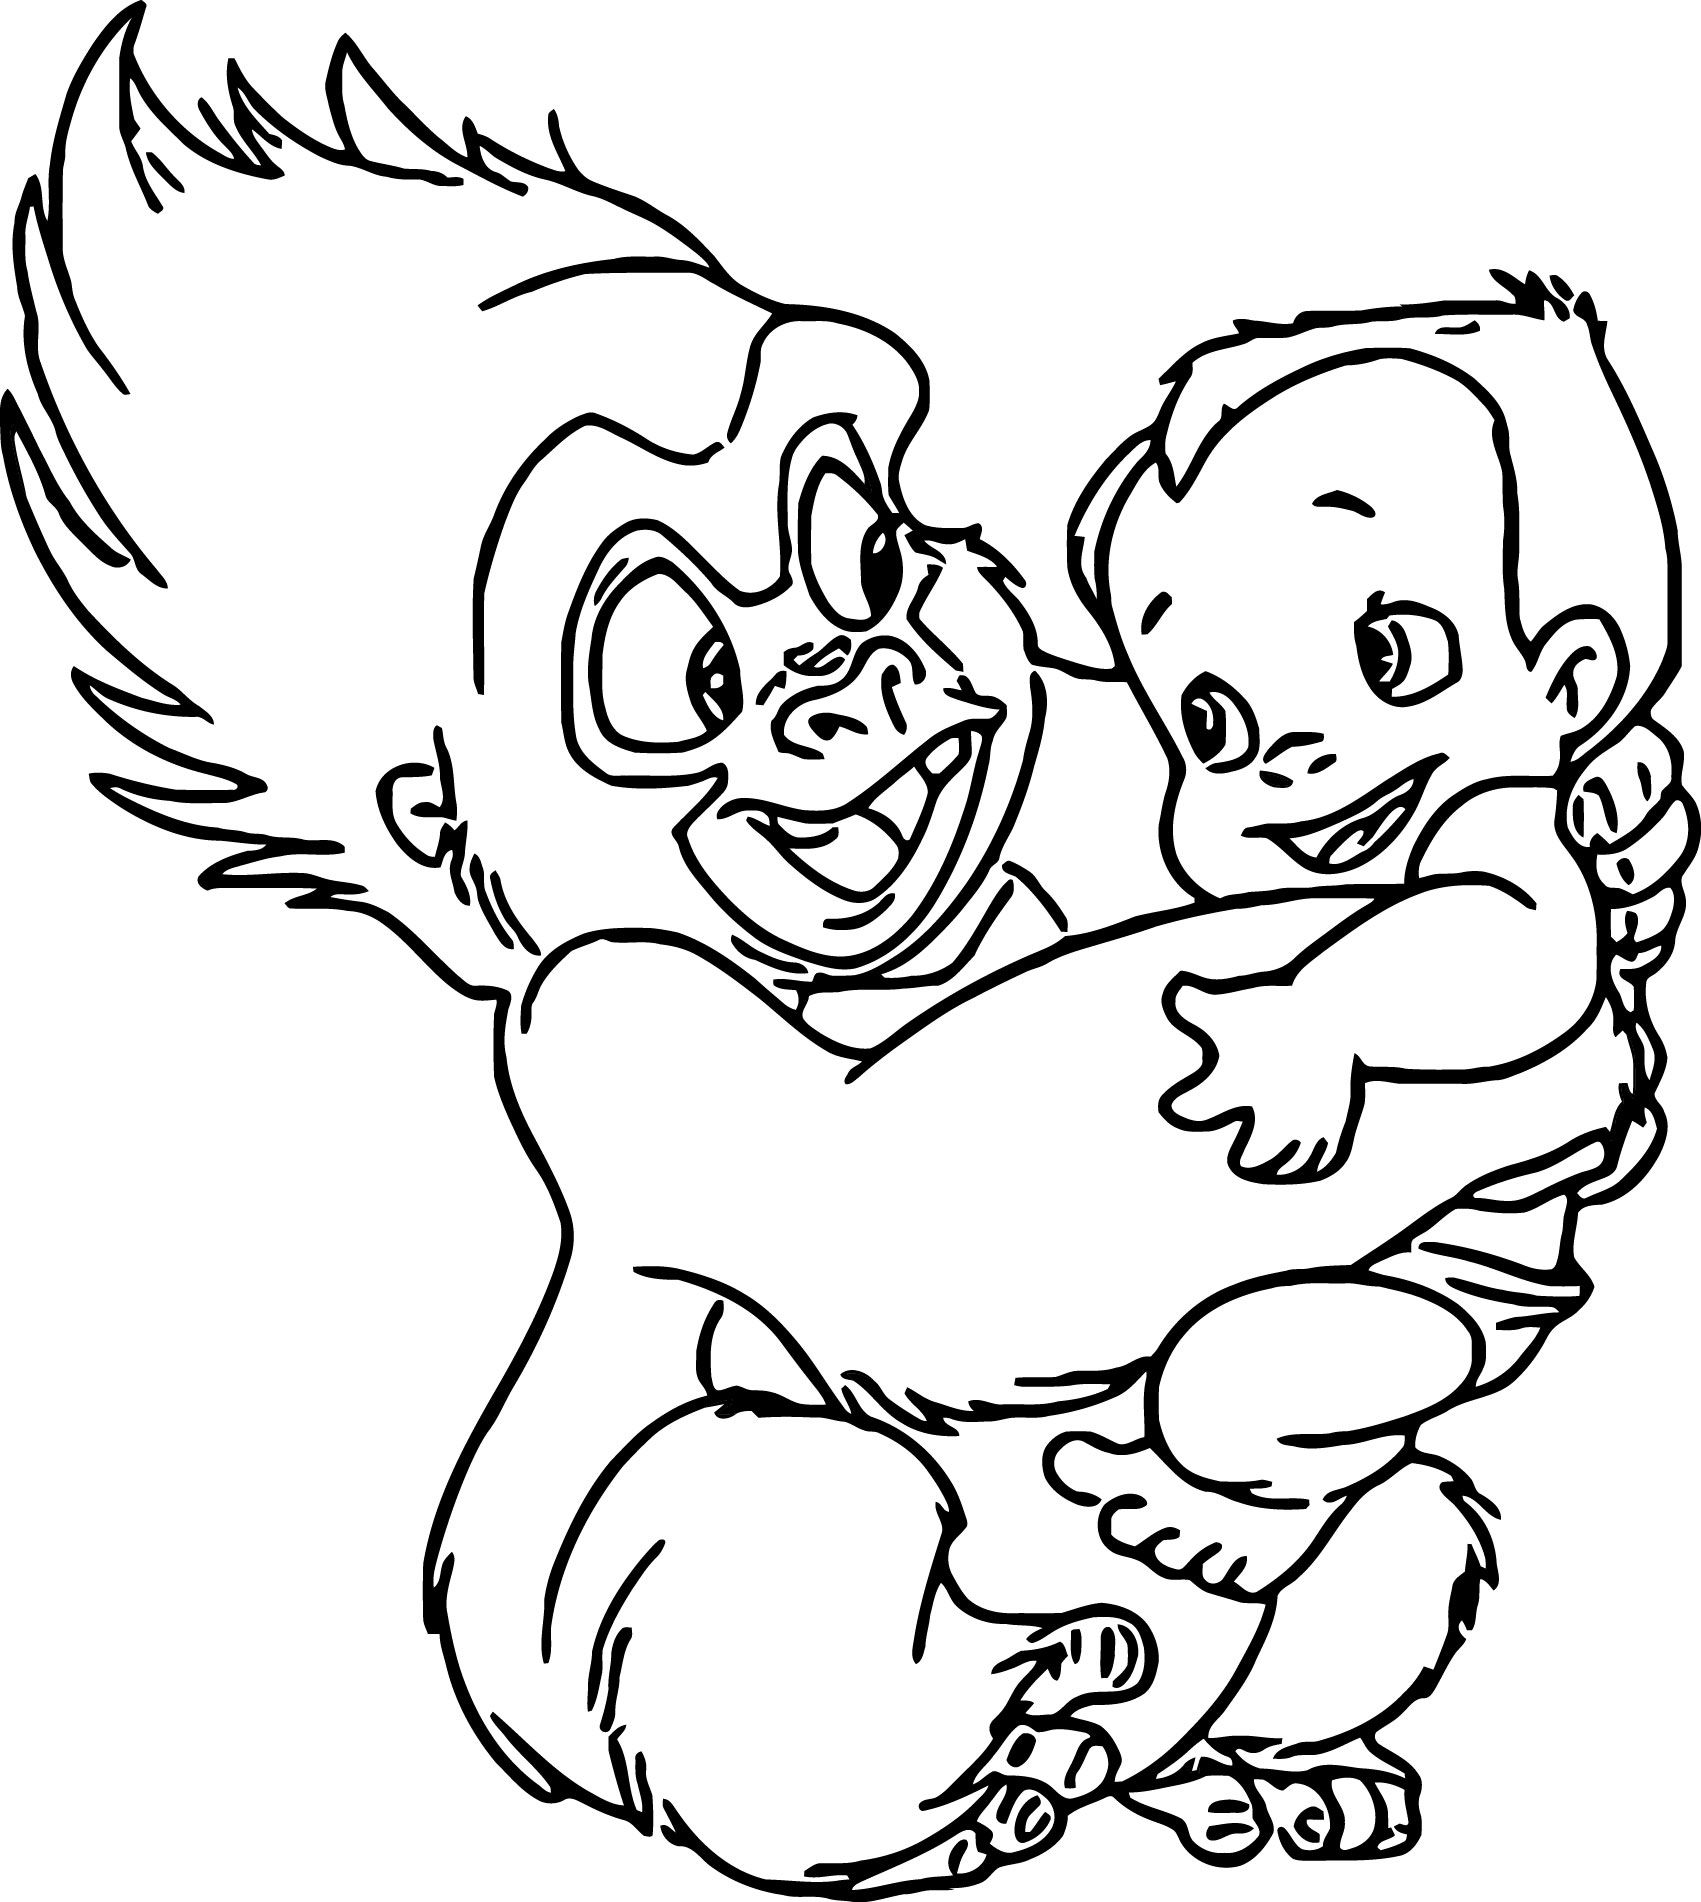 Disney Baby Tarzan Coloring Pages Disney Coloring Pages Baby